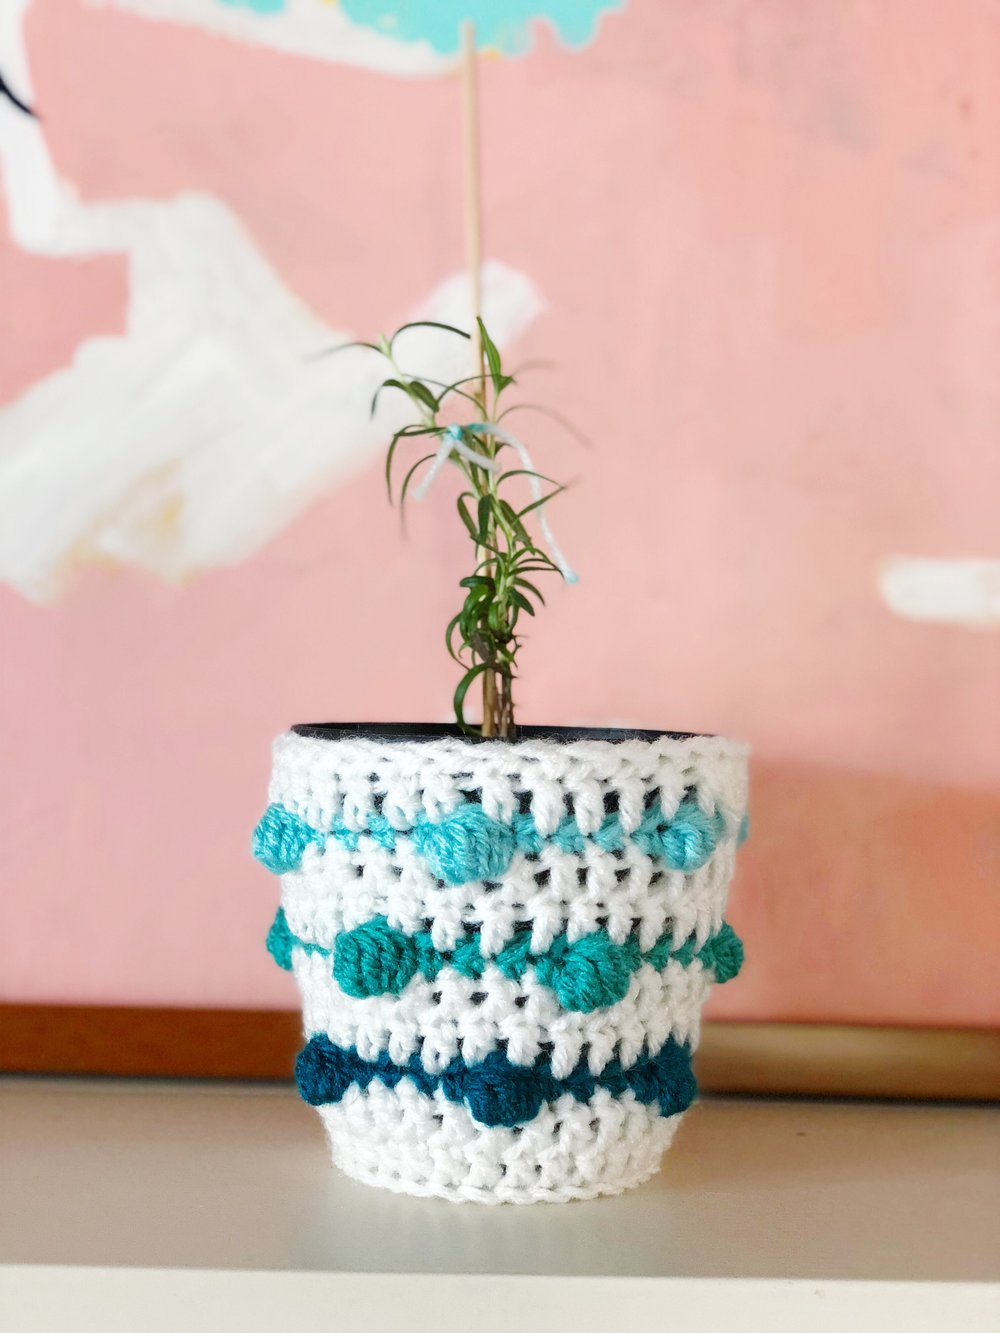 crochet plant cozy with gradient bubble stitch.jpg